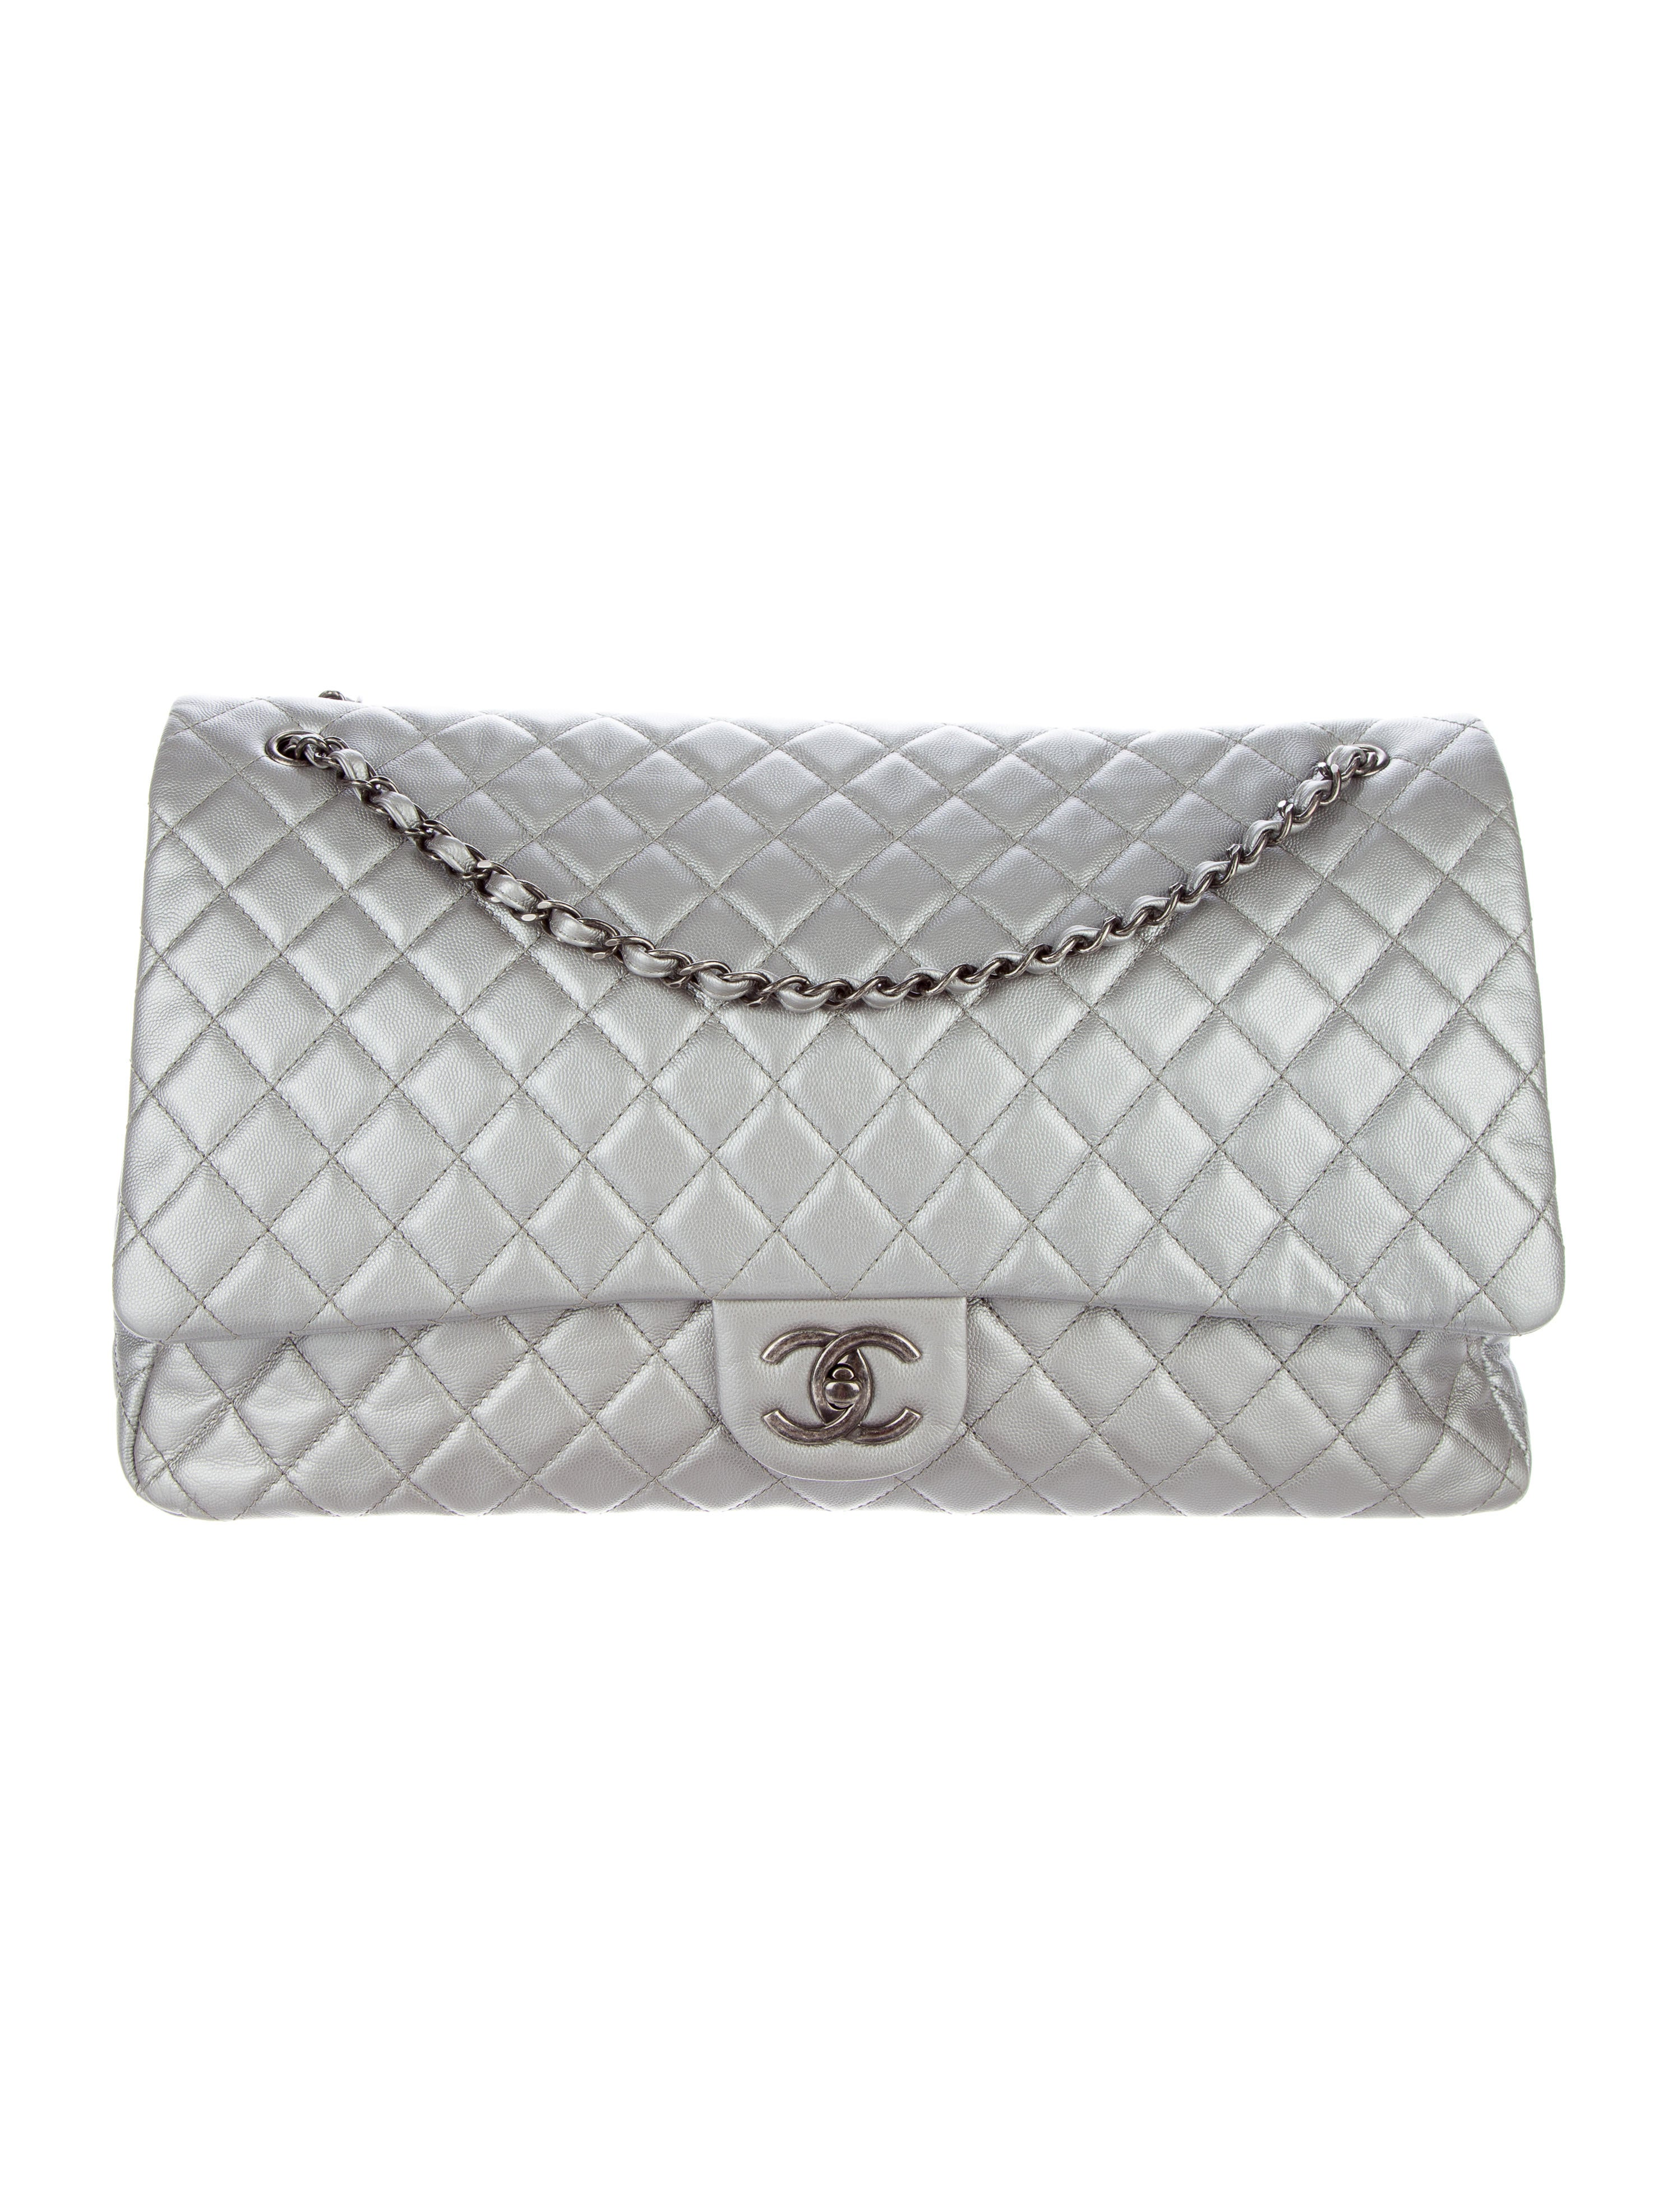 57f05ed29355 Chanel 2016 Xxl Airline Classic Flap Bag | Stanford Center for ...